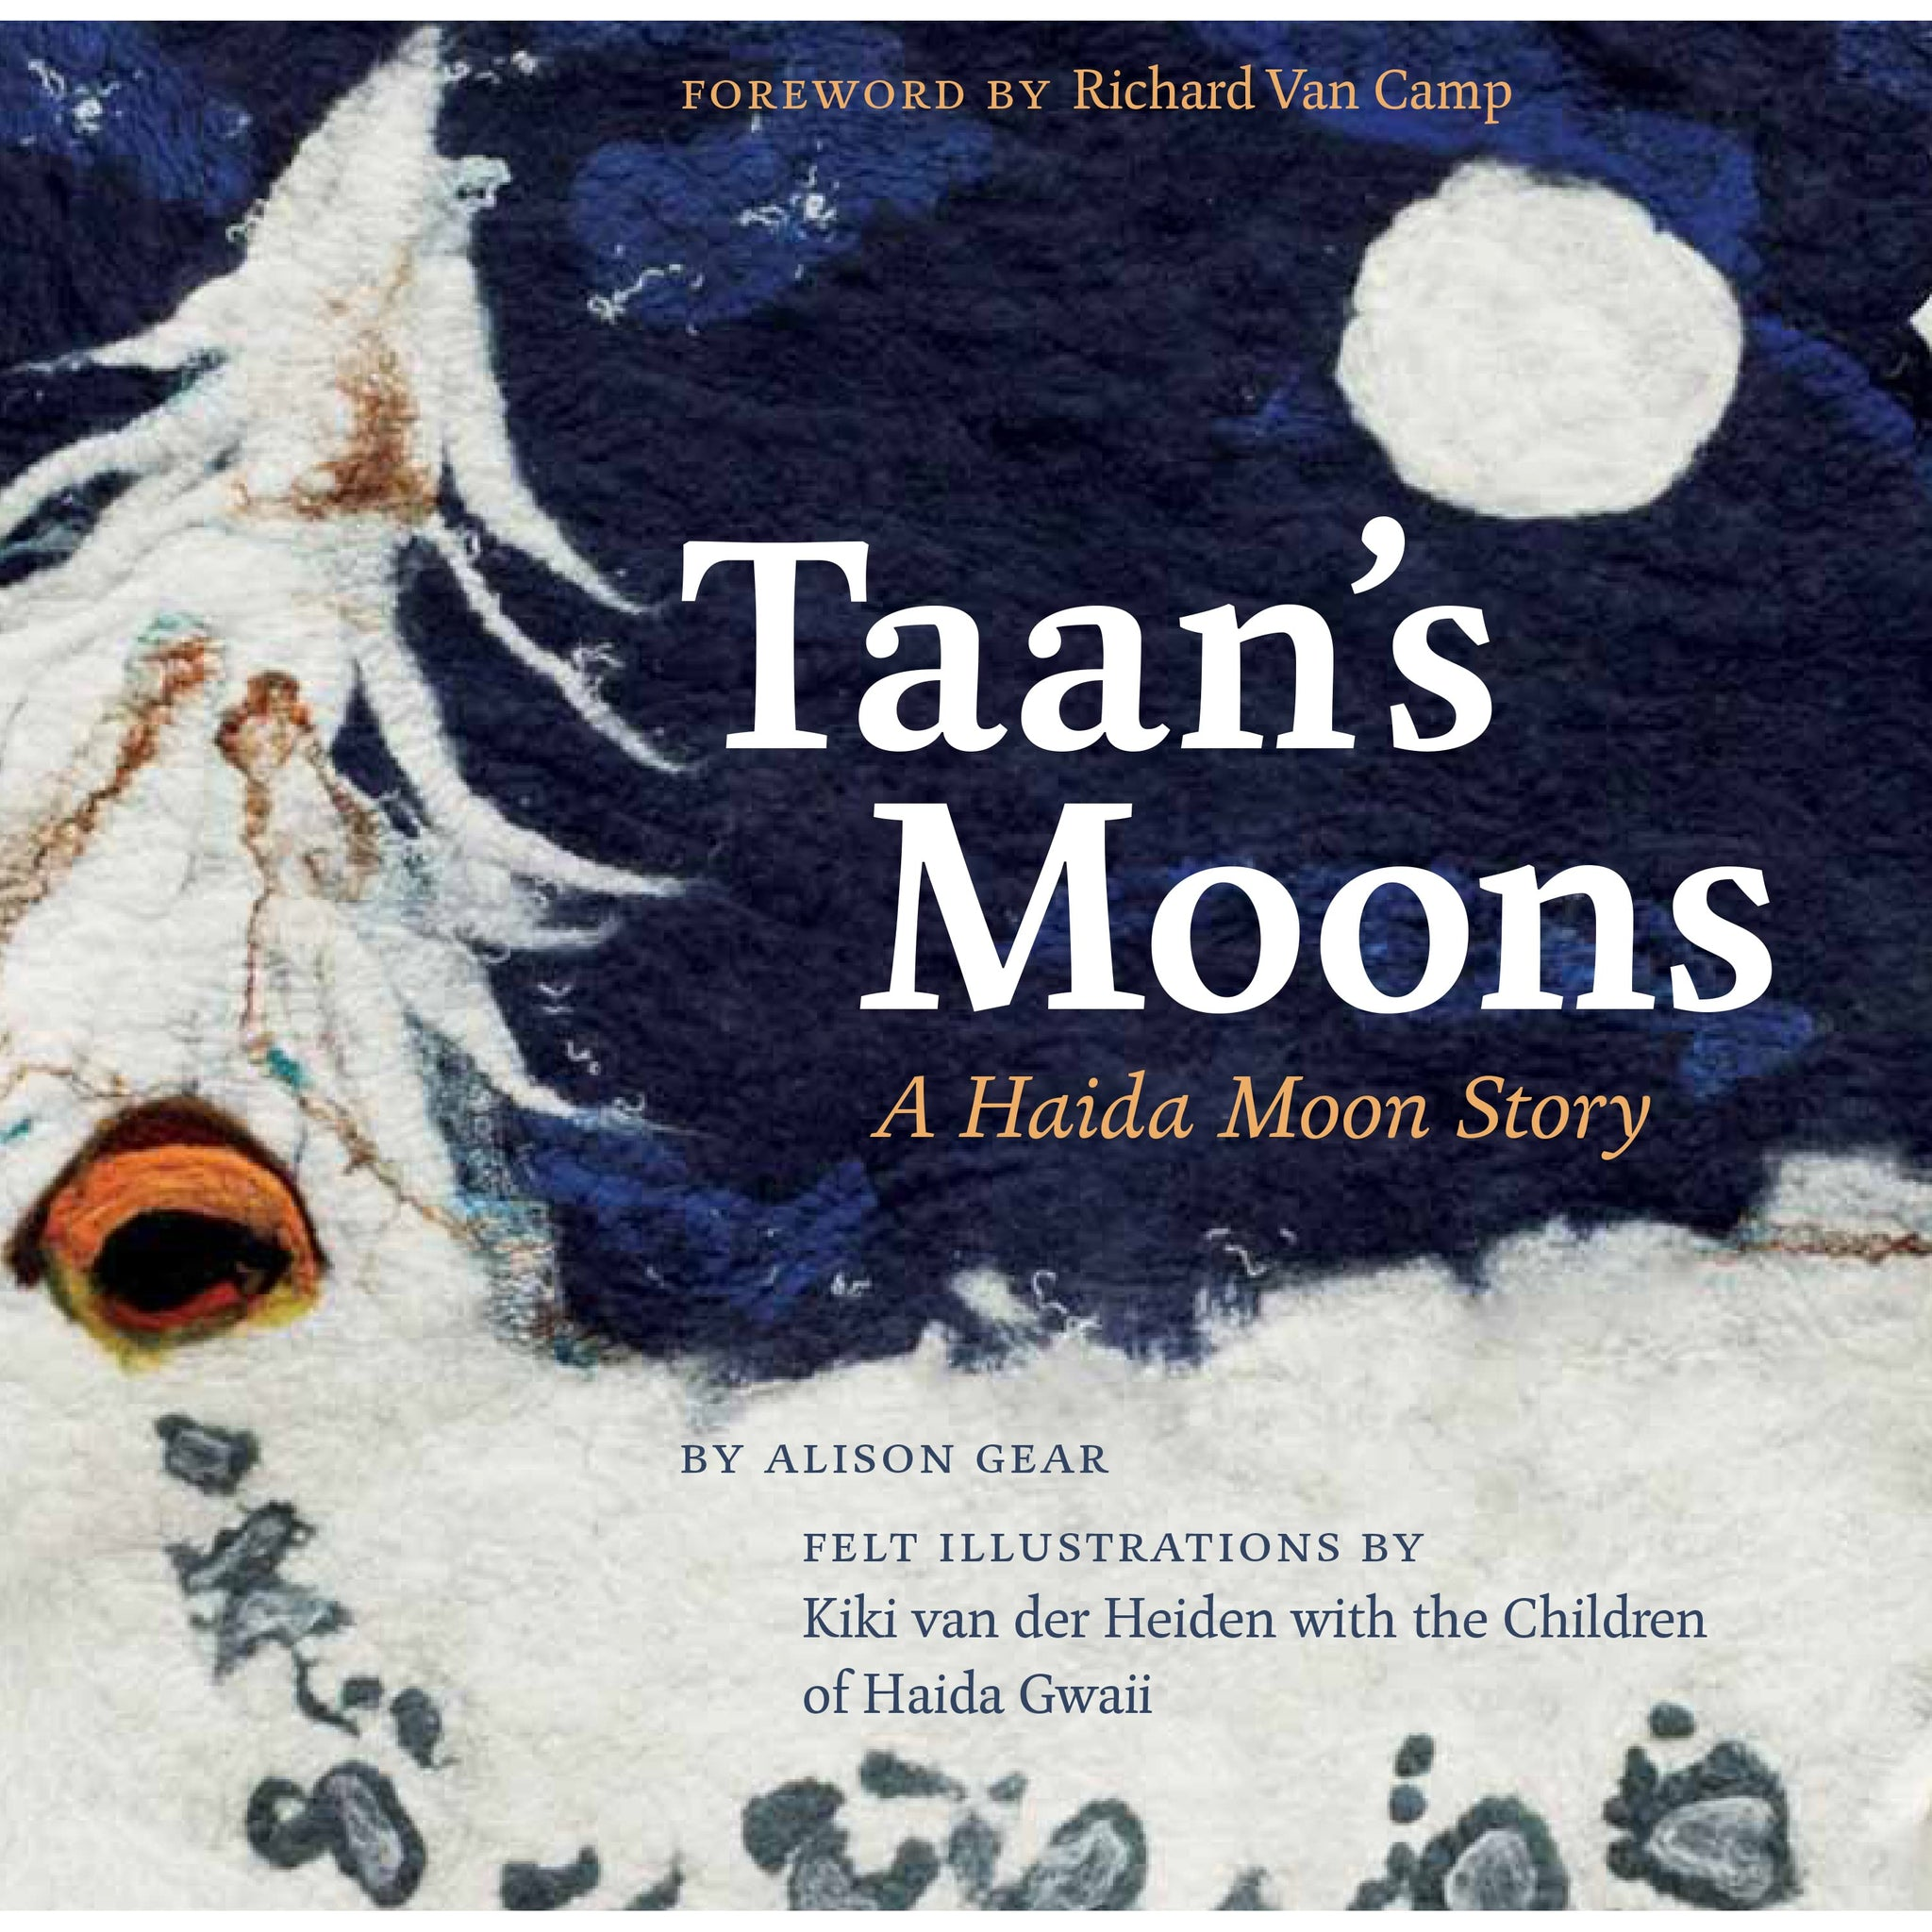 Taan's Moons: A Haida Moon Story by Alison Gear